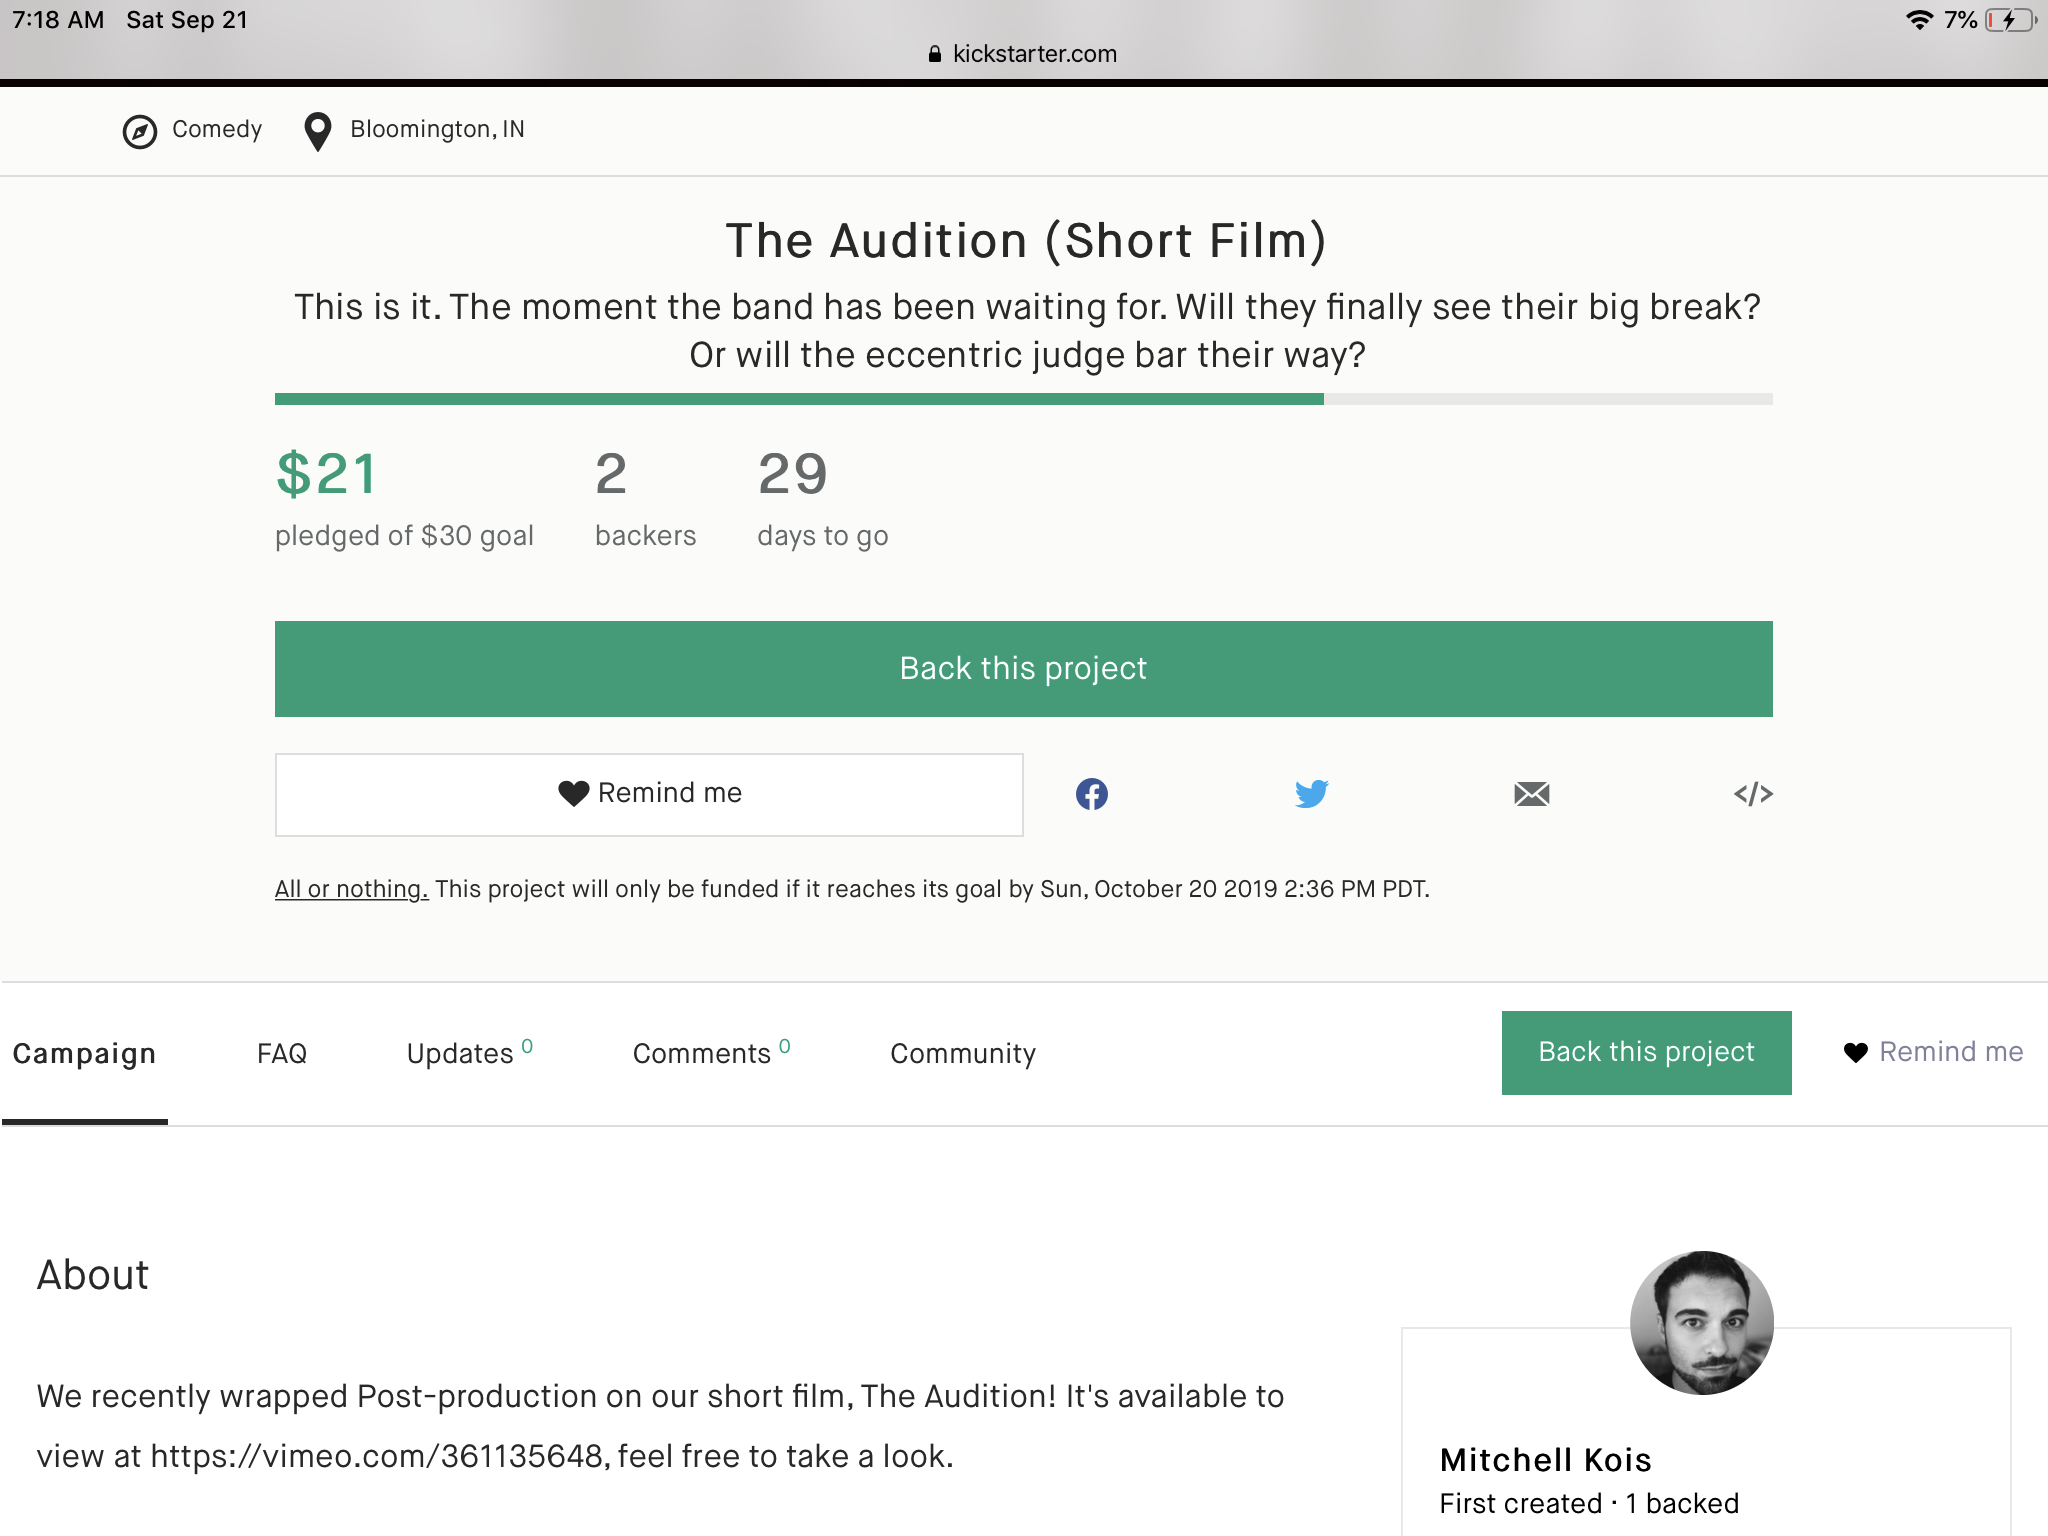 Support the film by going to Kickstarter